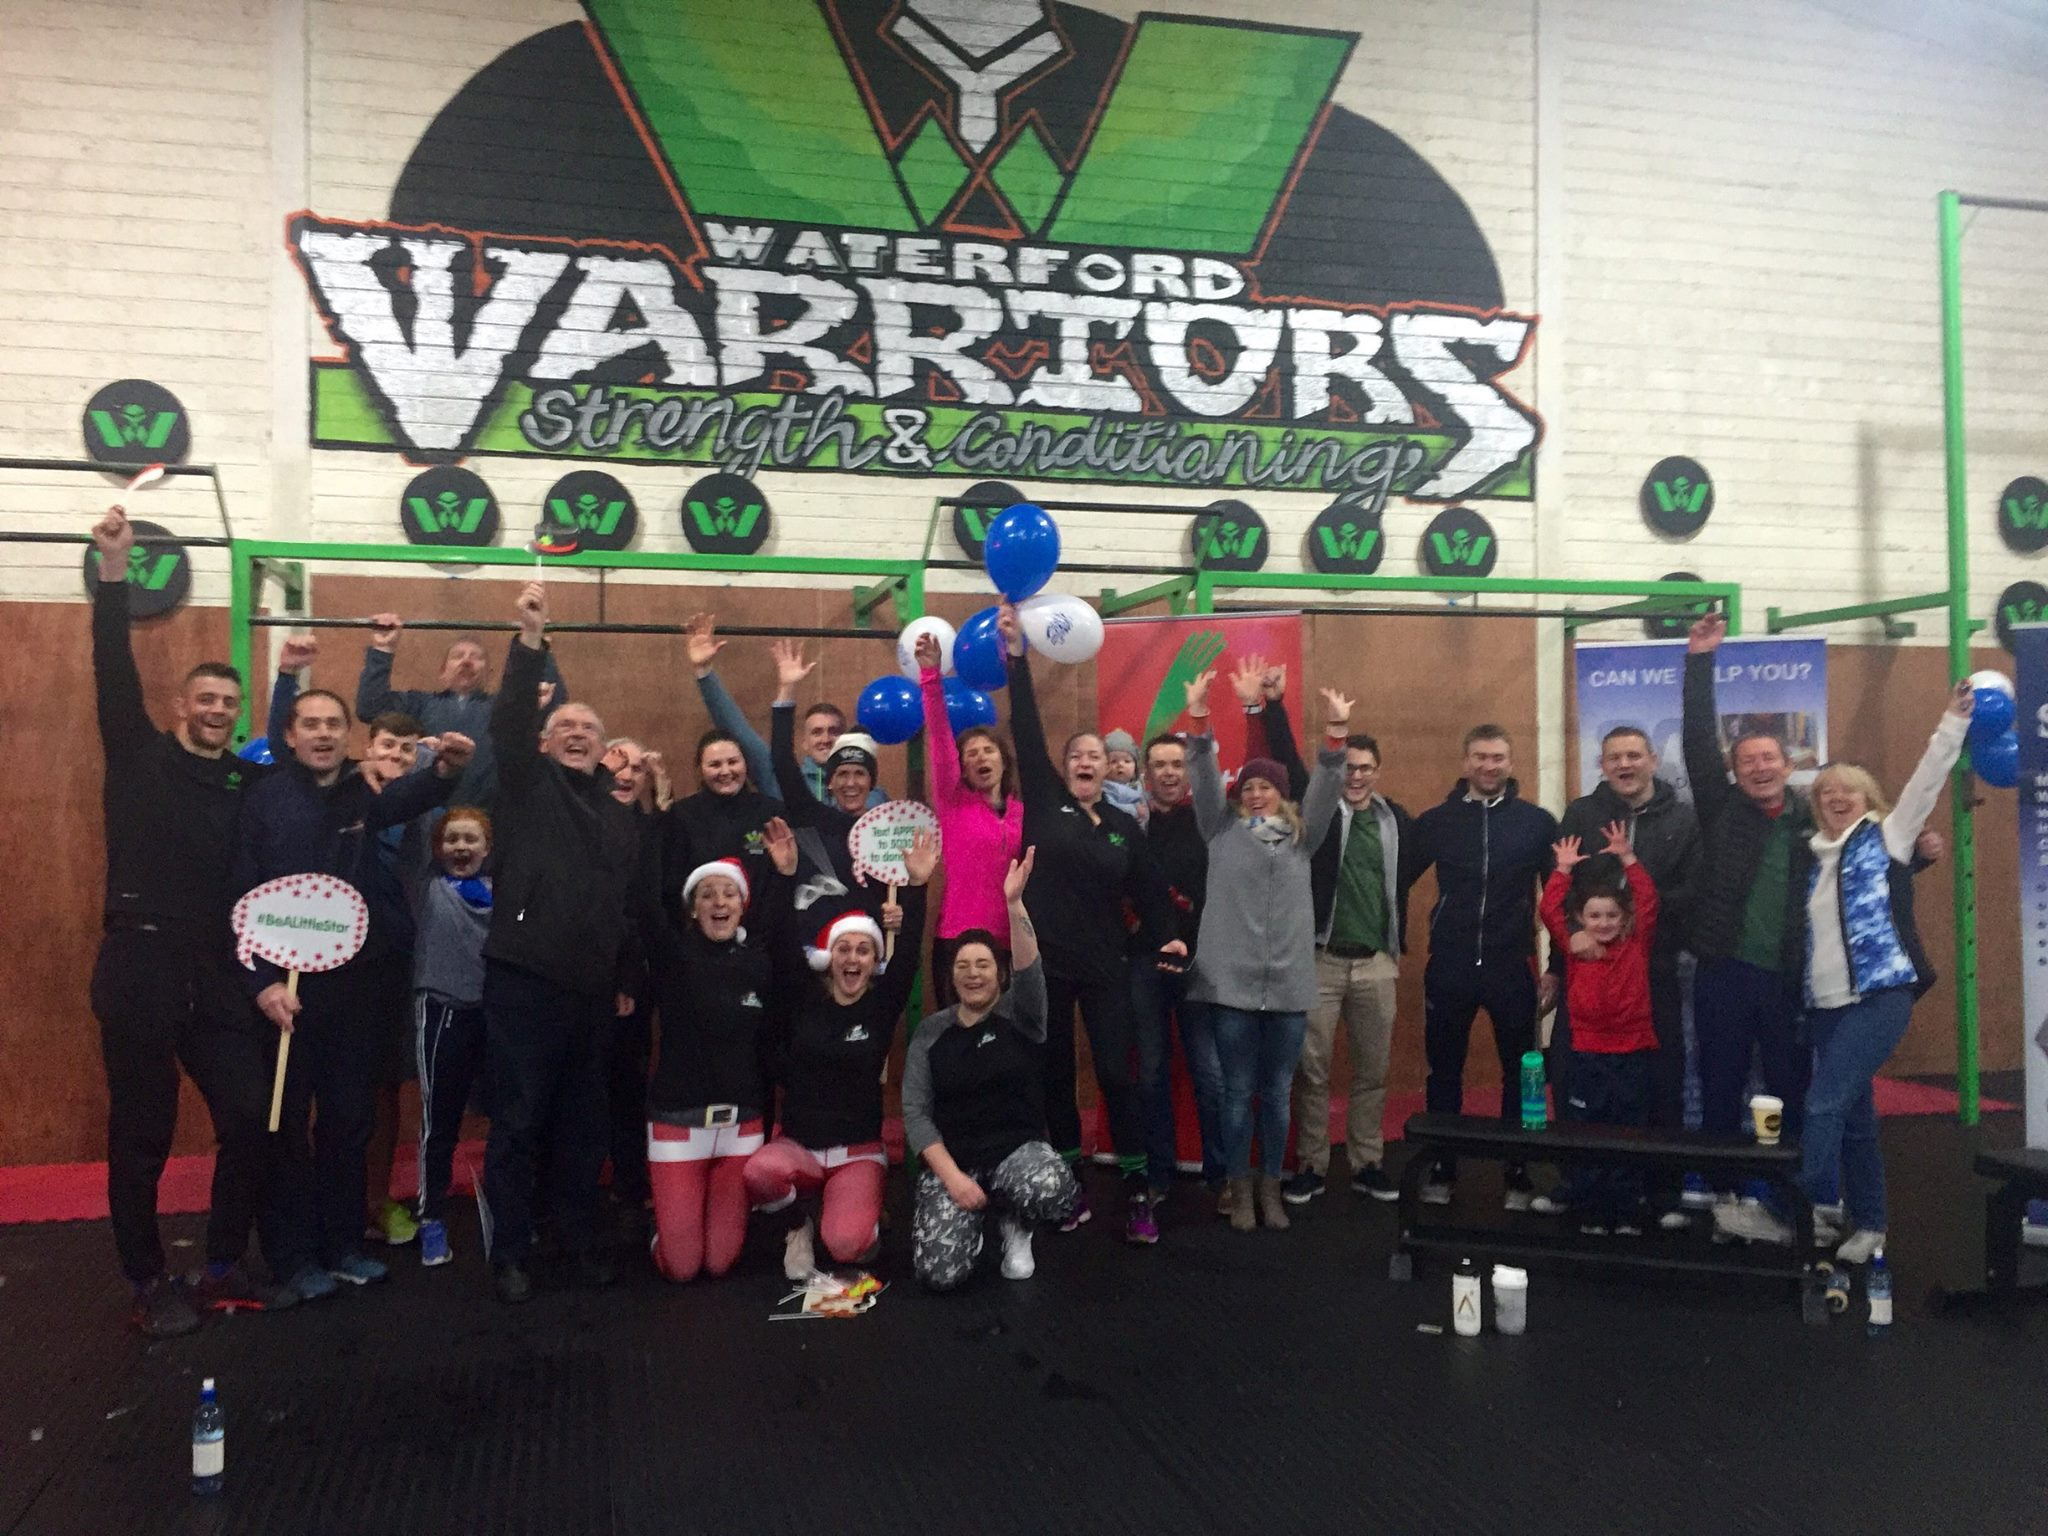 Waterford Warriors 24 Hour Row raises close to €20,000 for the WLR Christmas Appeal